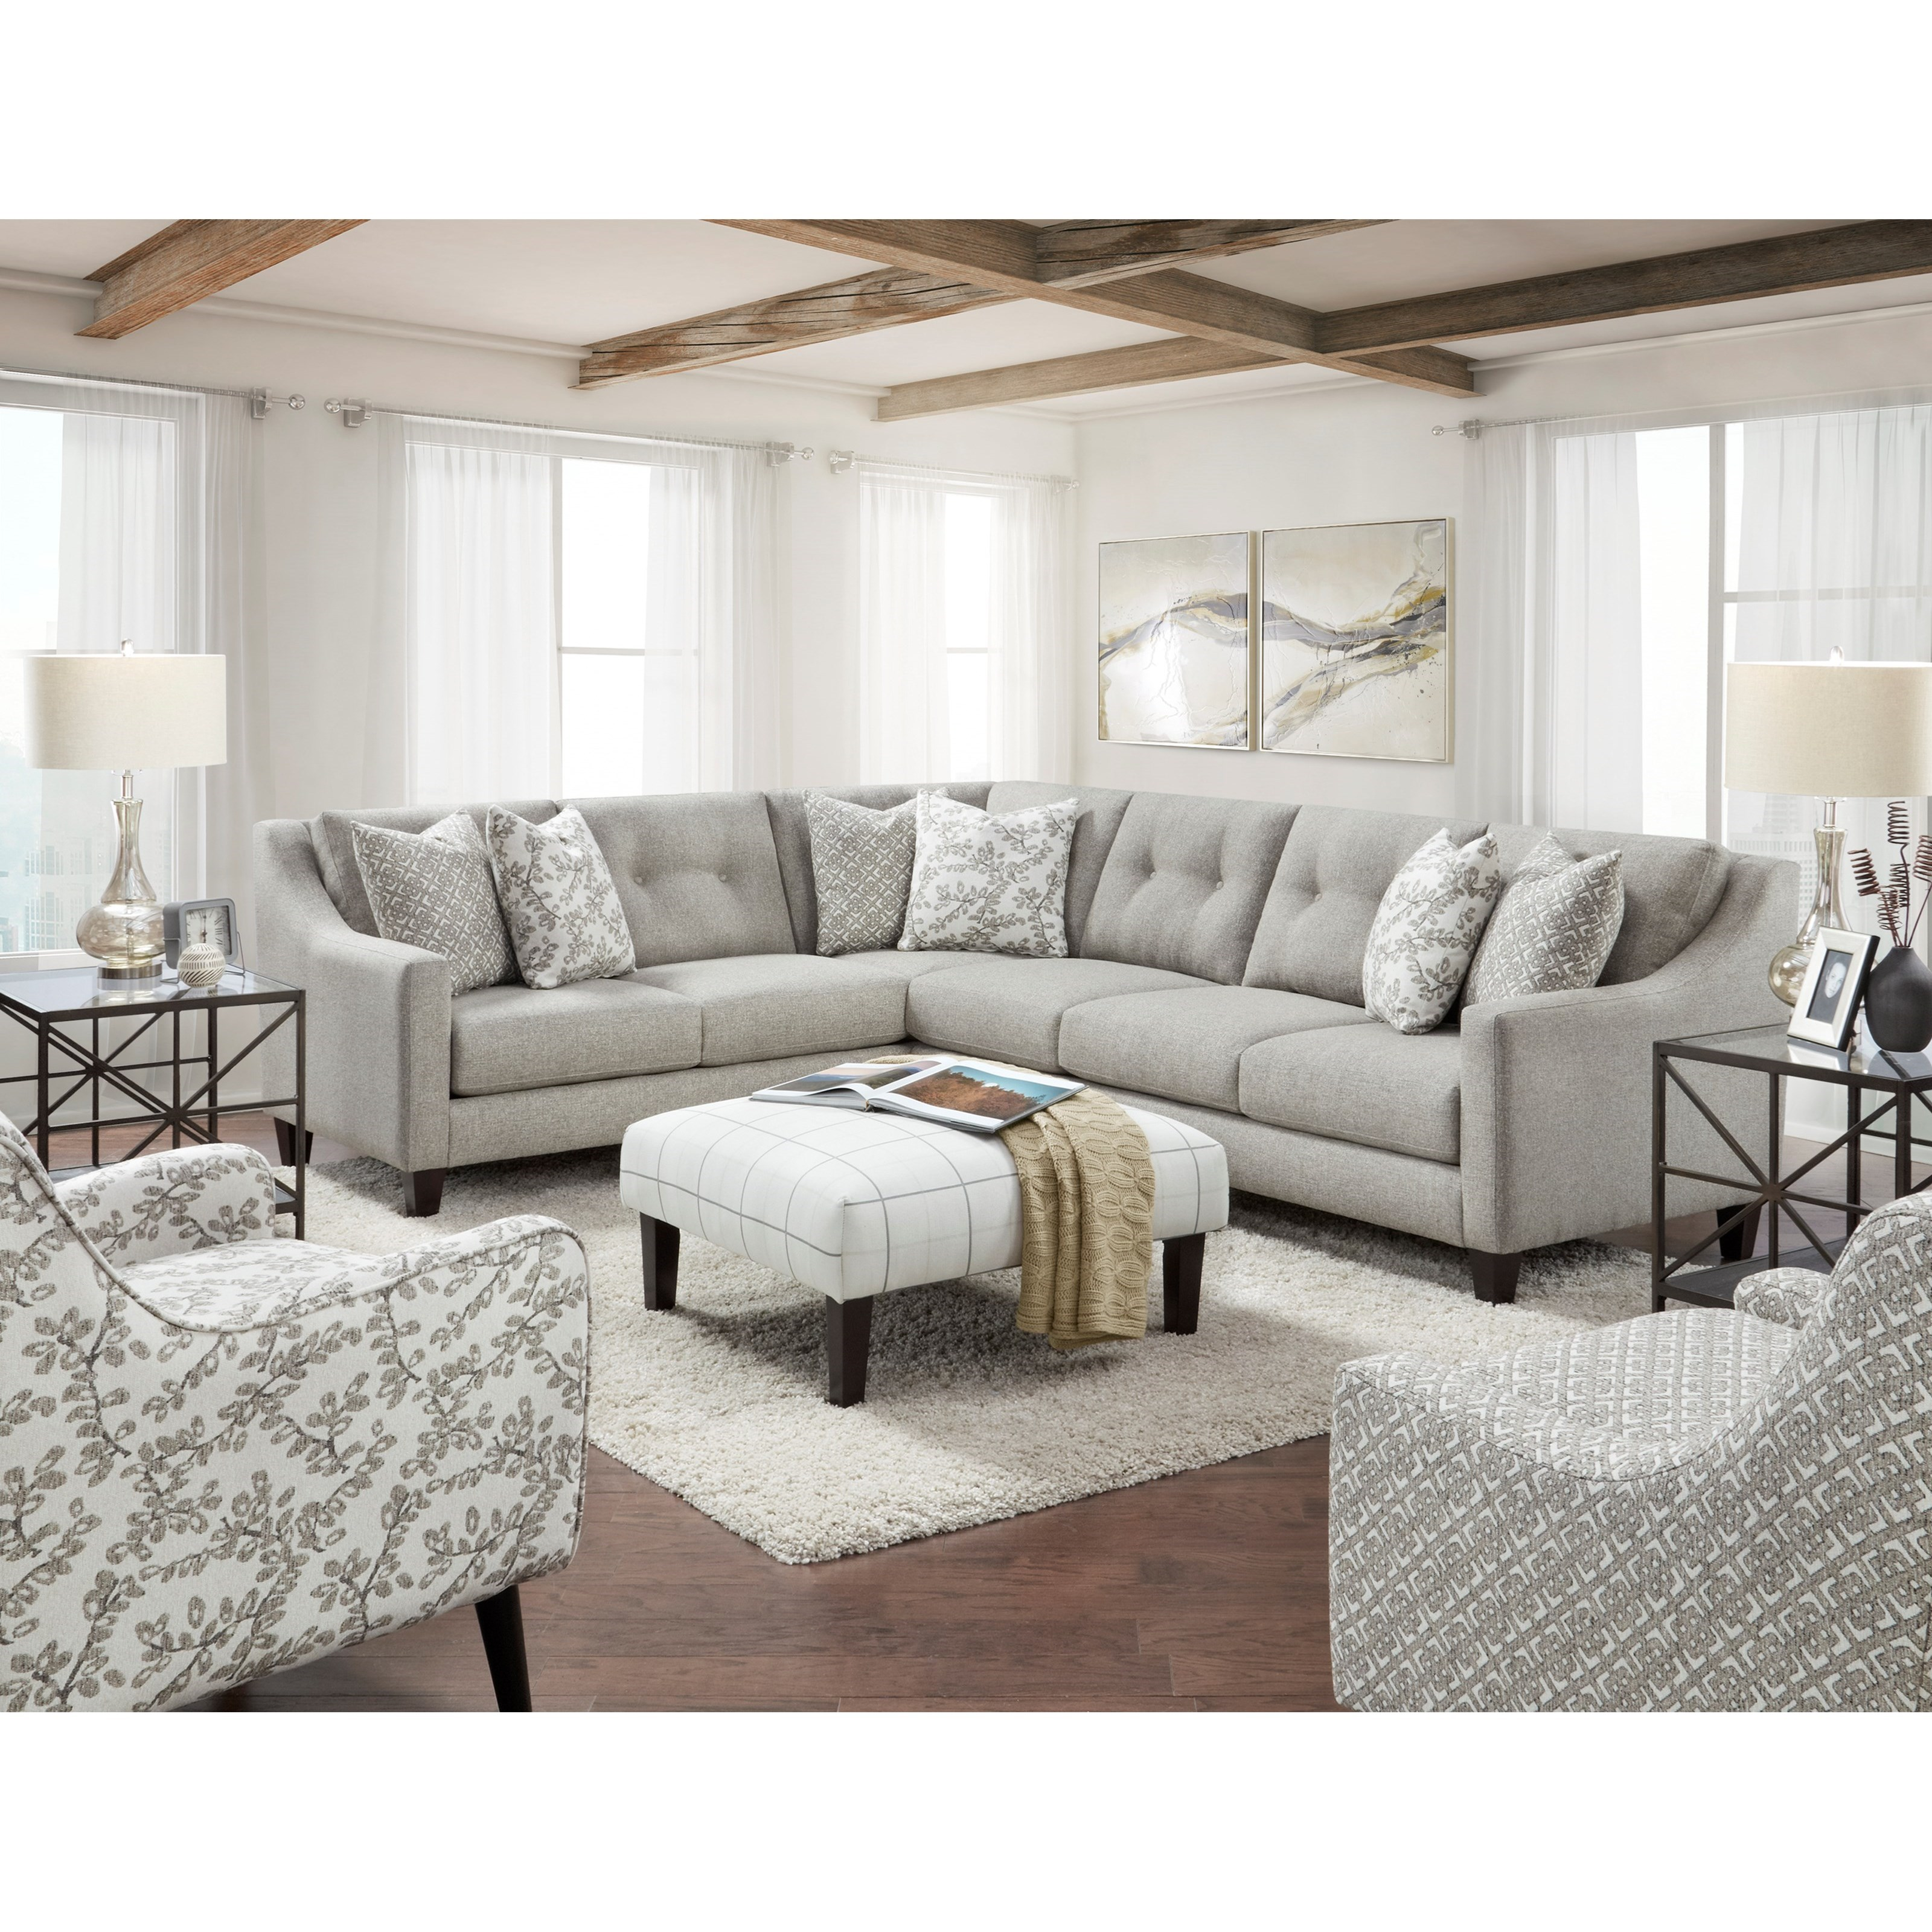 3280 Living Room Group by Fusion Furniture at Story & Lee Furniture